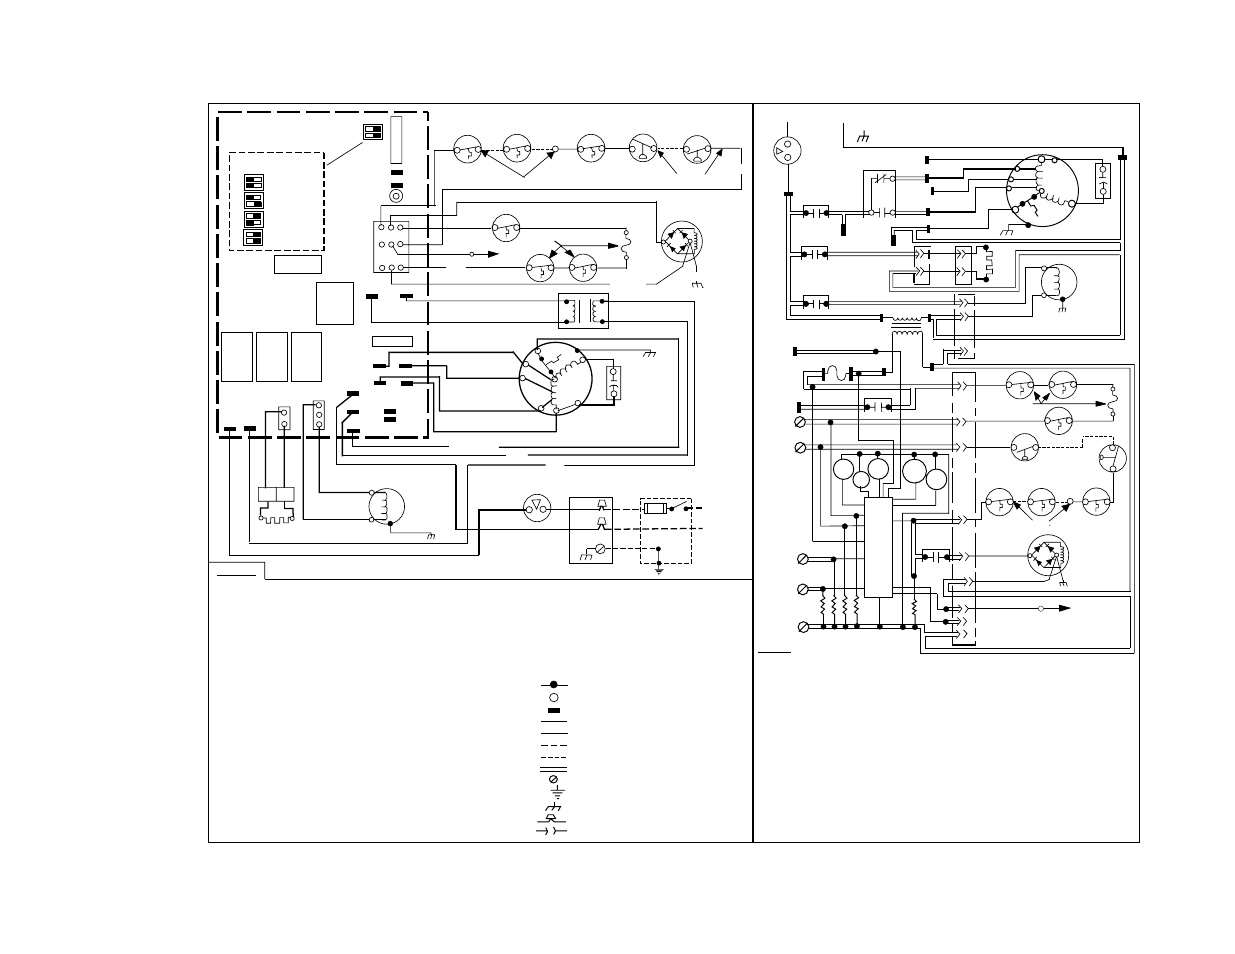 bryant thermostat wiring diagram yamaha symbols nest the learning 2